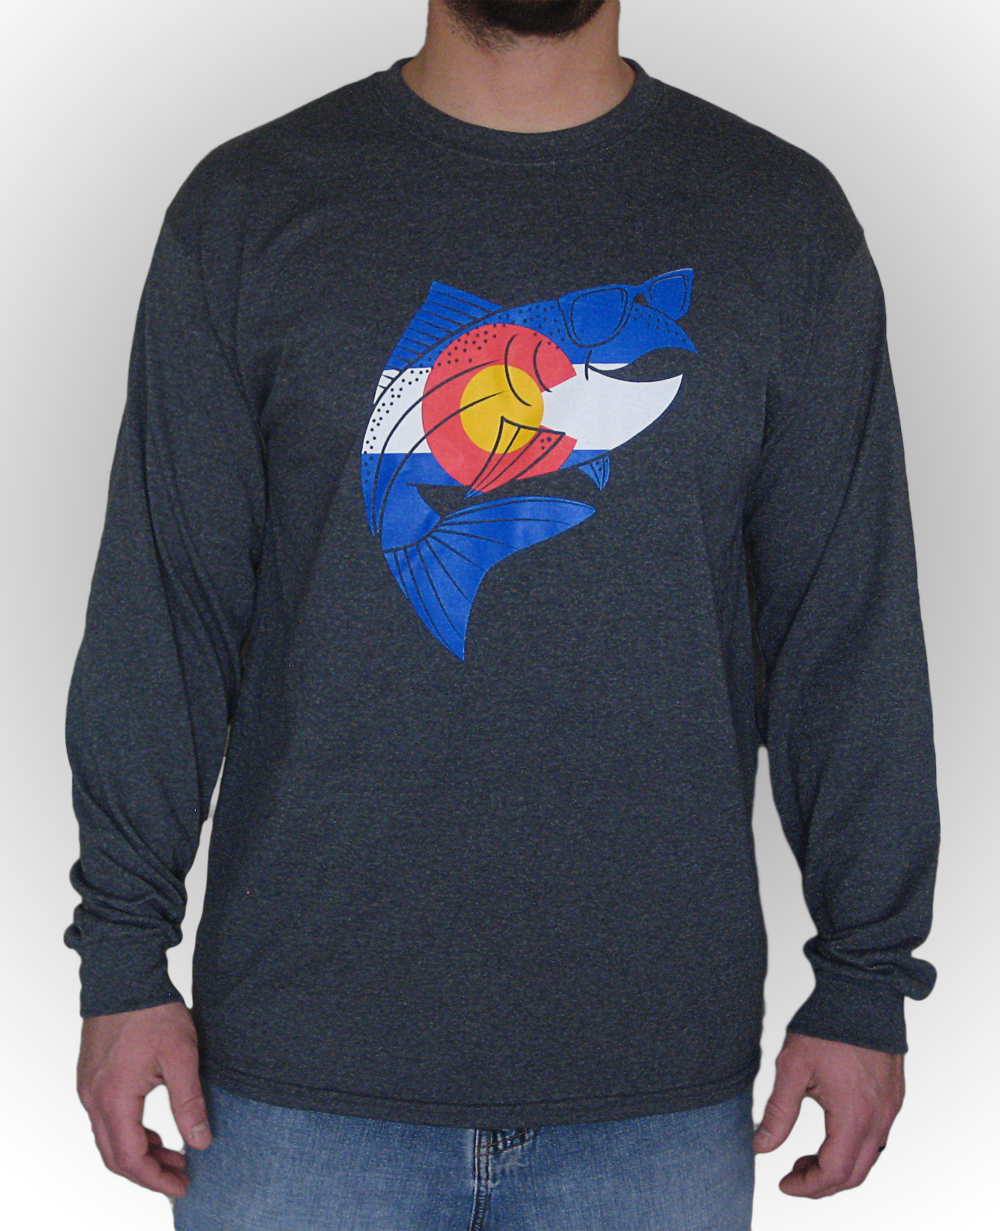 The Fly Trout Colorado Longsleeve T Shirt The Fly Trout